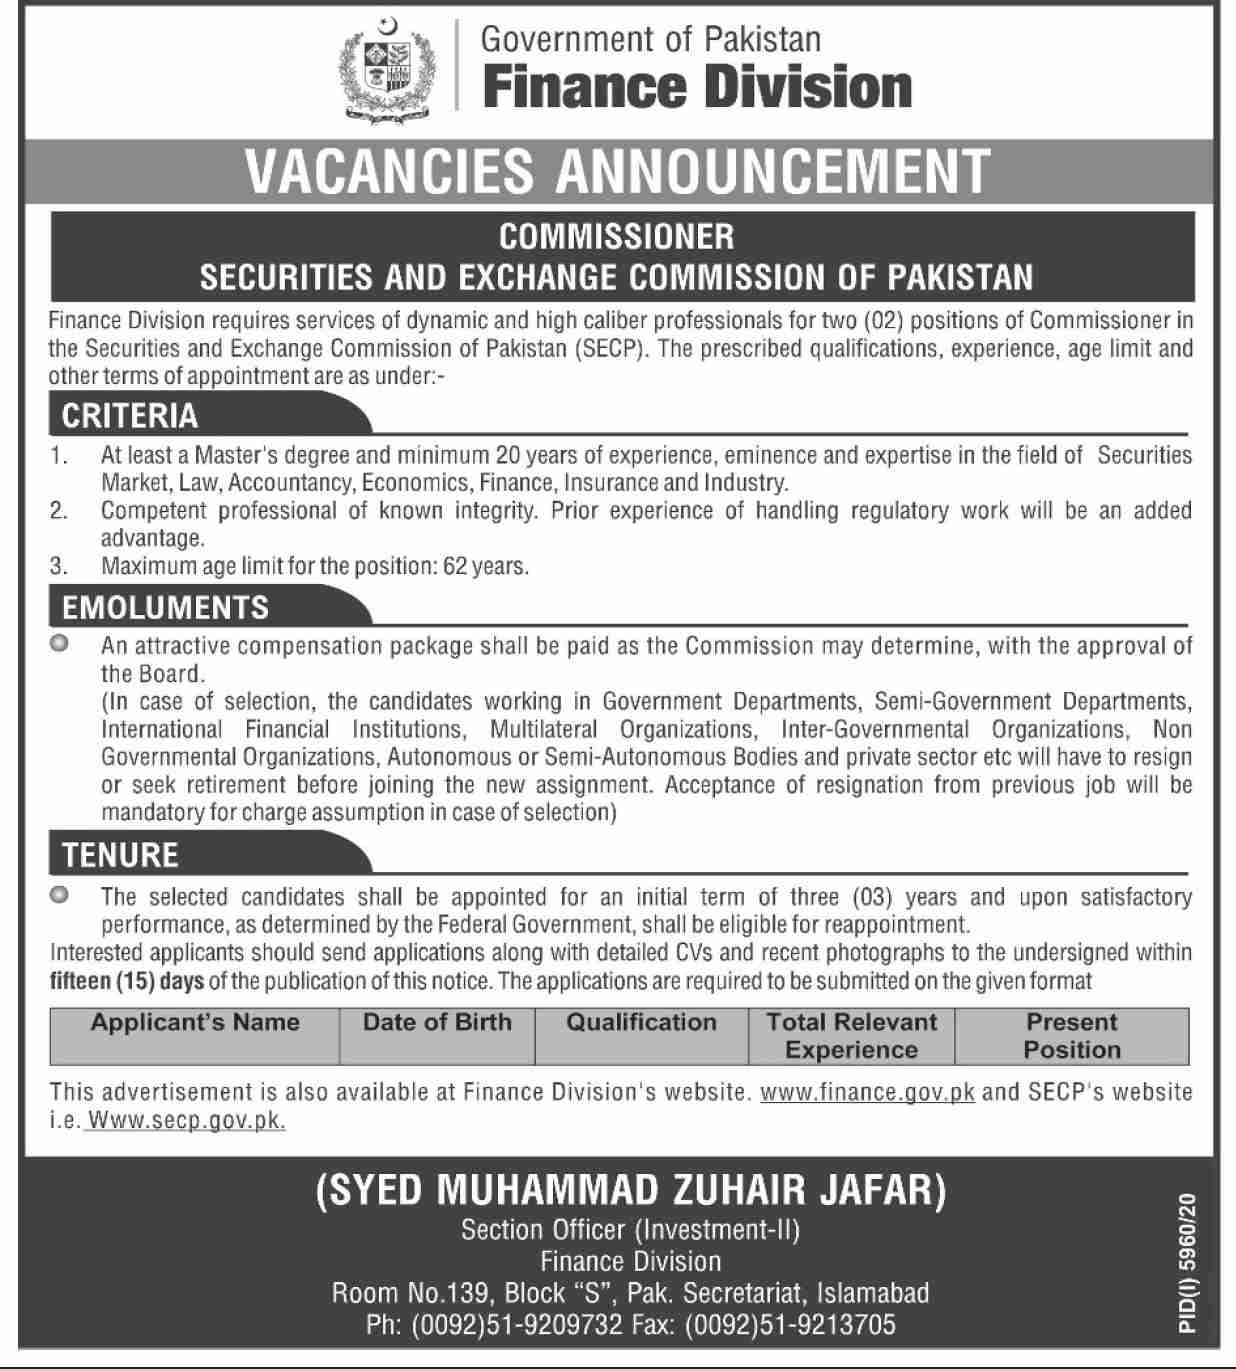 This page is about Finance Division Government of Pakistan Jobs May 2021 Latest Advertisment. Finance Division Government of Pakistan invites applications for the posts announced on a contact / permanent basis from suitable candidates for the following positions such as Commissioner SECP. These vacancies are published in Dawn Newspaper, one of the best News paper of Pakistan. This advertisement has pulibhsed on 03 May 2021 and Last Date to apply is 17 May 2021.